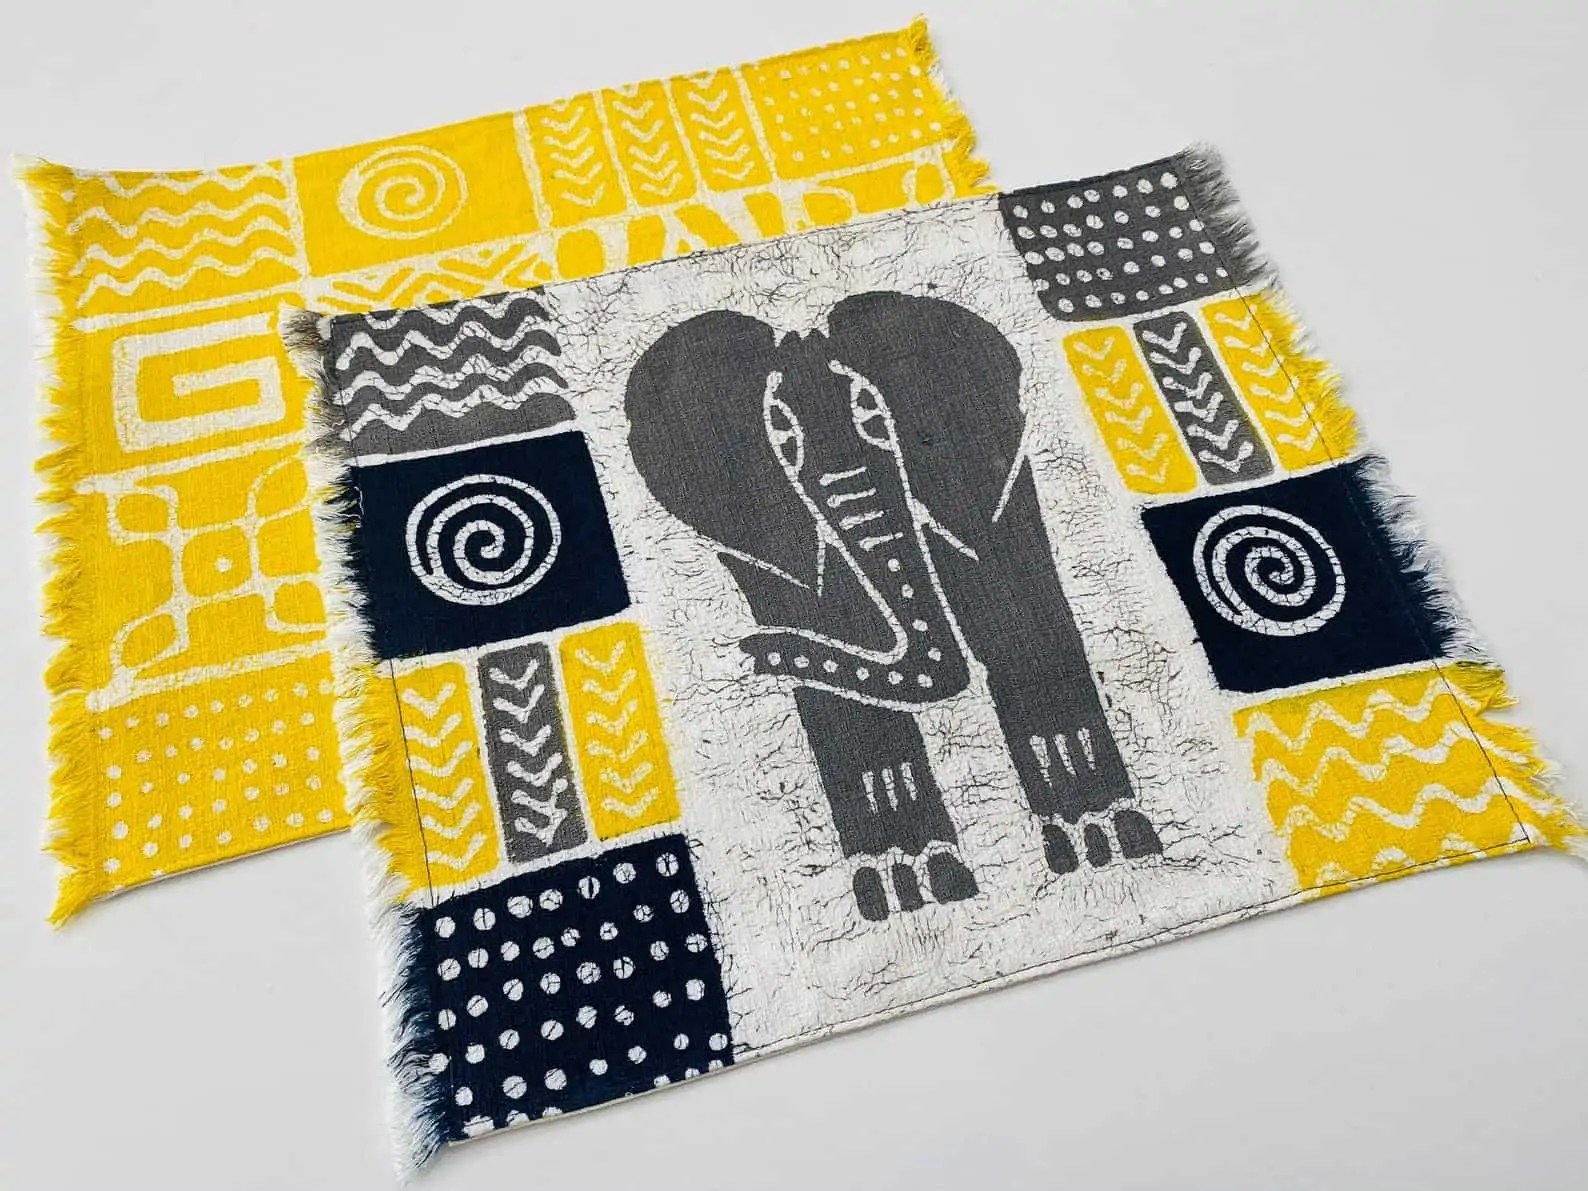 BatiquaGifts Buy Black | Canadian Etsy Shop FairTrade African Textiles | Yellow Place Mat